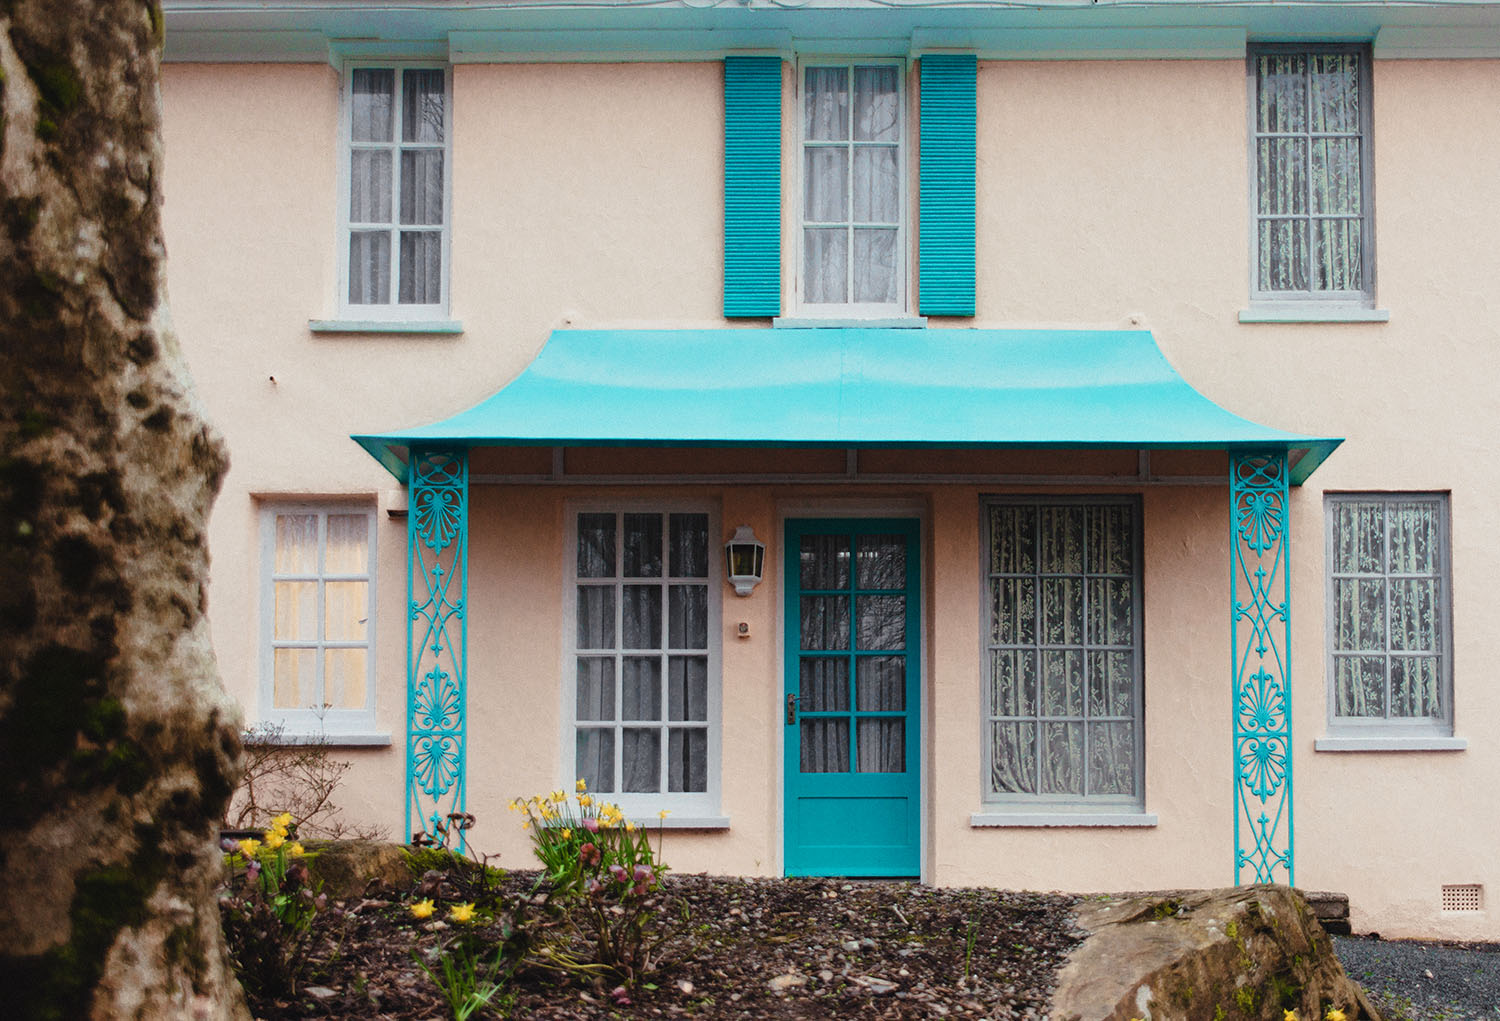 The Cliff House with Trompe-l'œil windows in Portmeirion, North Wales